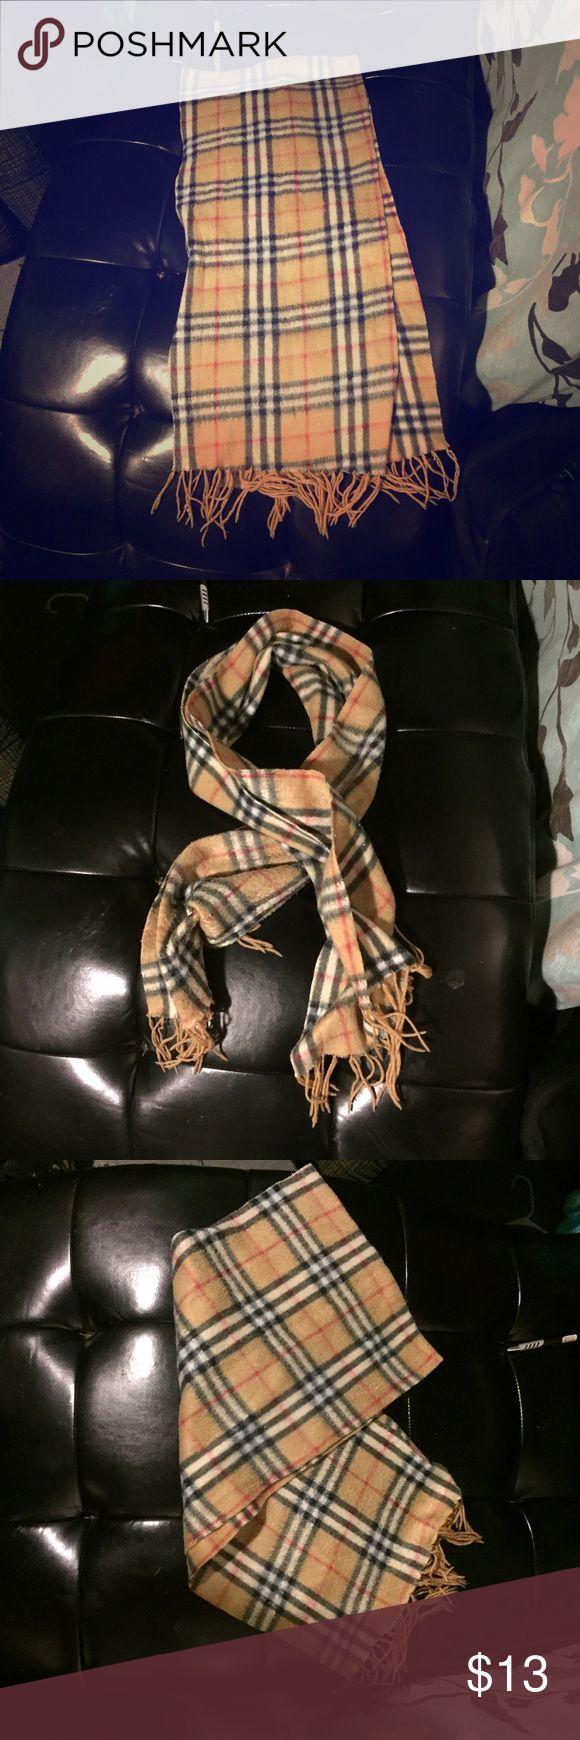 Burberry style fleece scarf. This fleece scarf has the Burberry print. Extra soft ! Accessories Scarves & Wraps